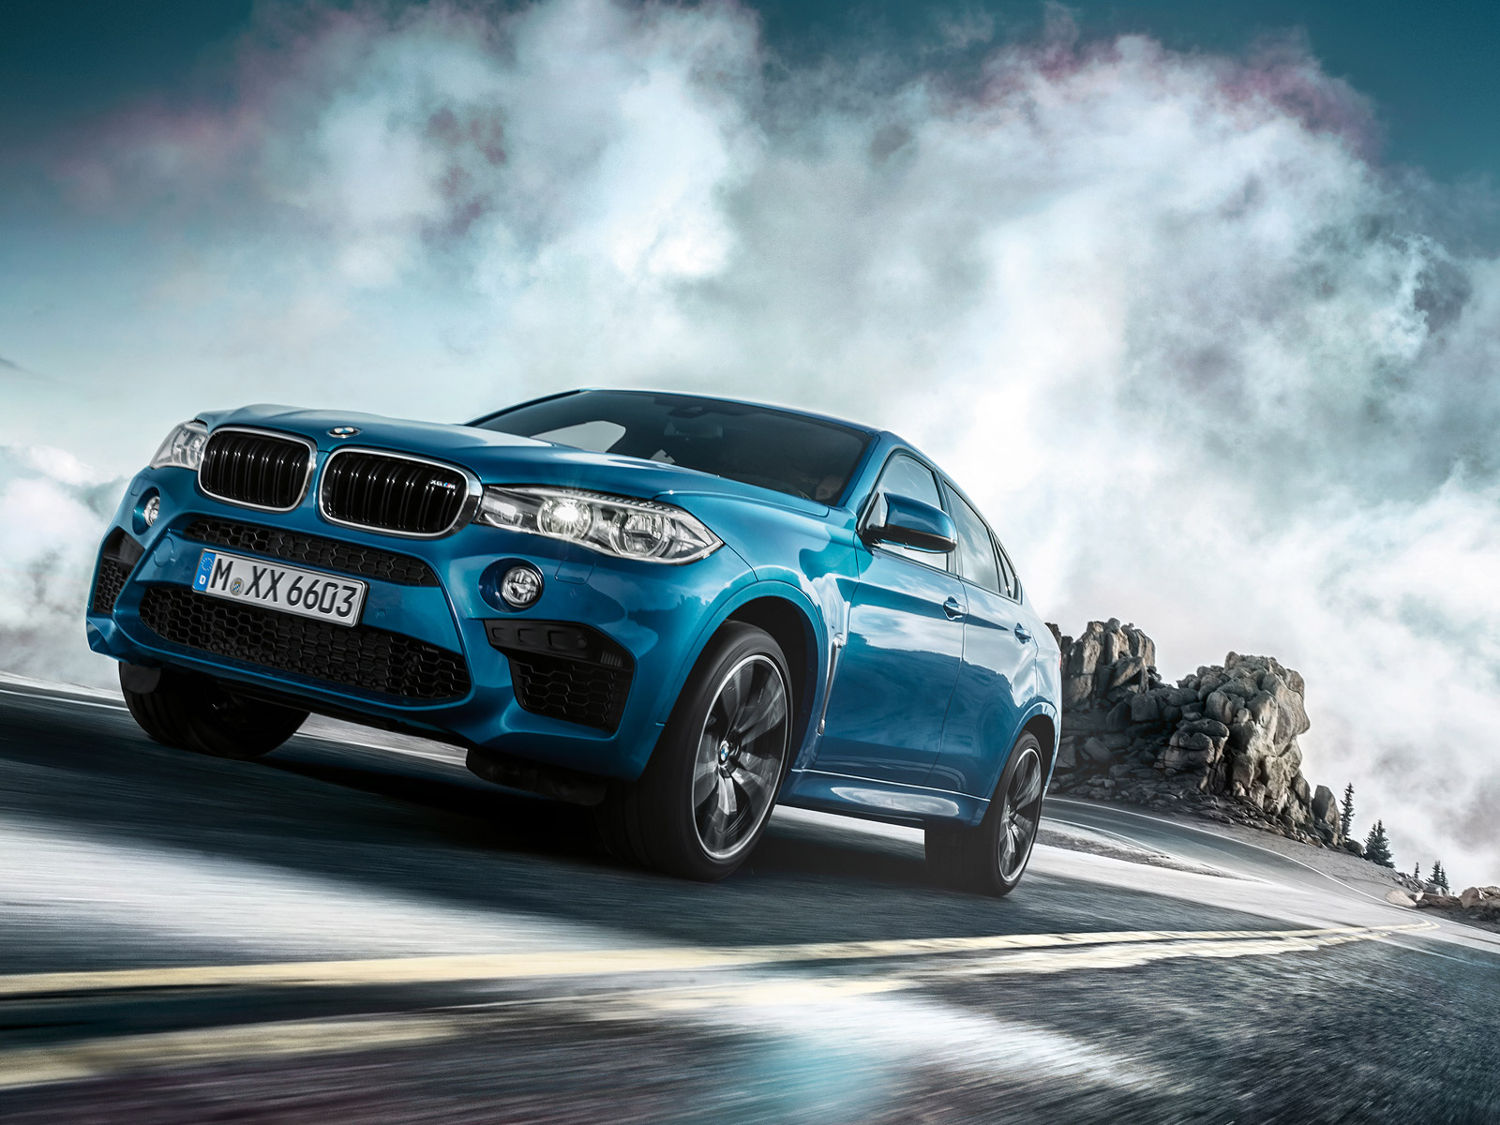 Comparison Bmw X6 M 2016 Vs Porsche Macan Turbo 2016